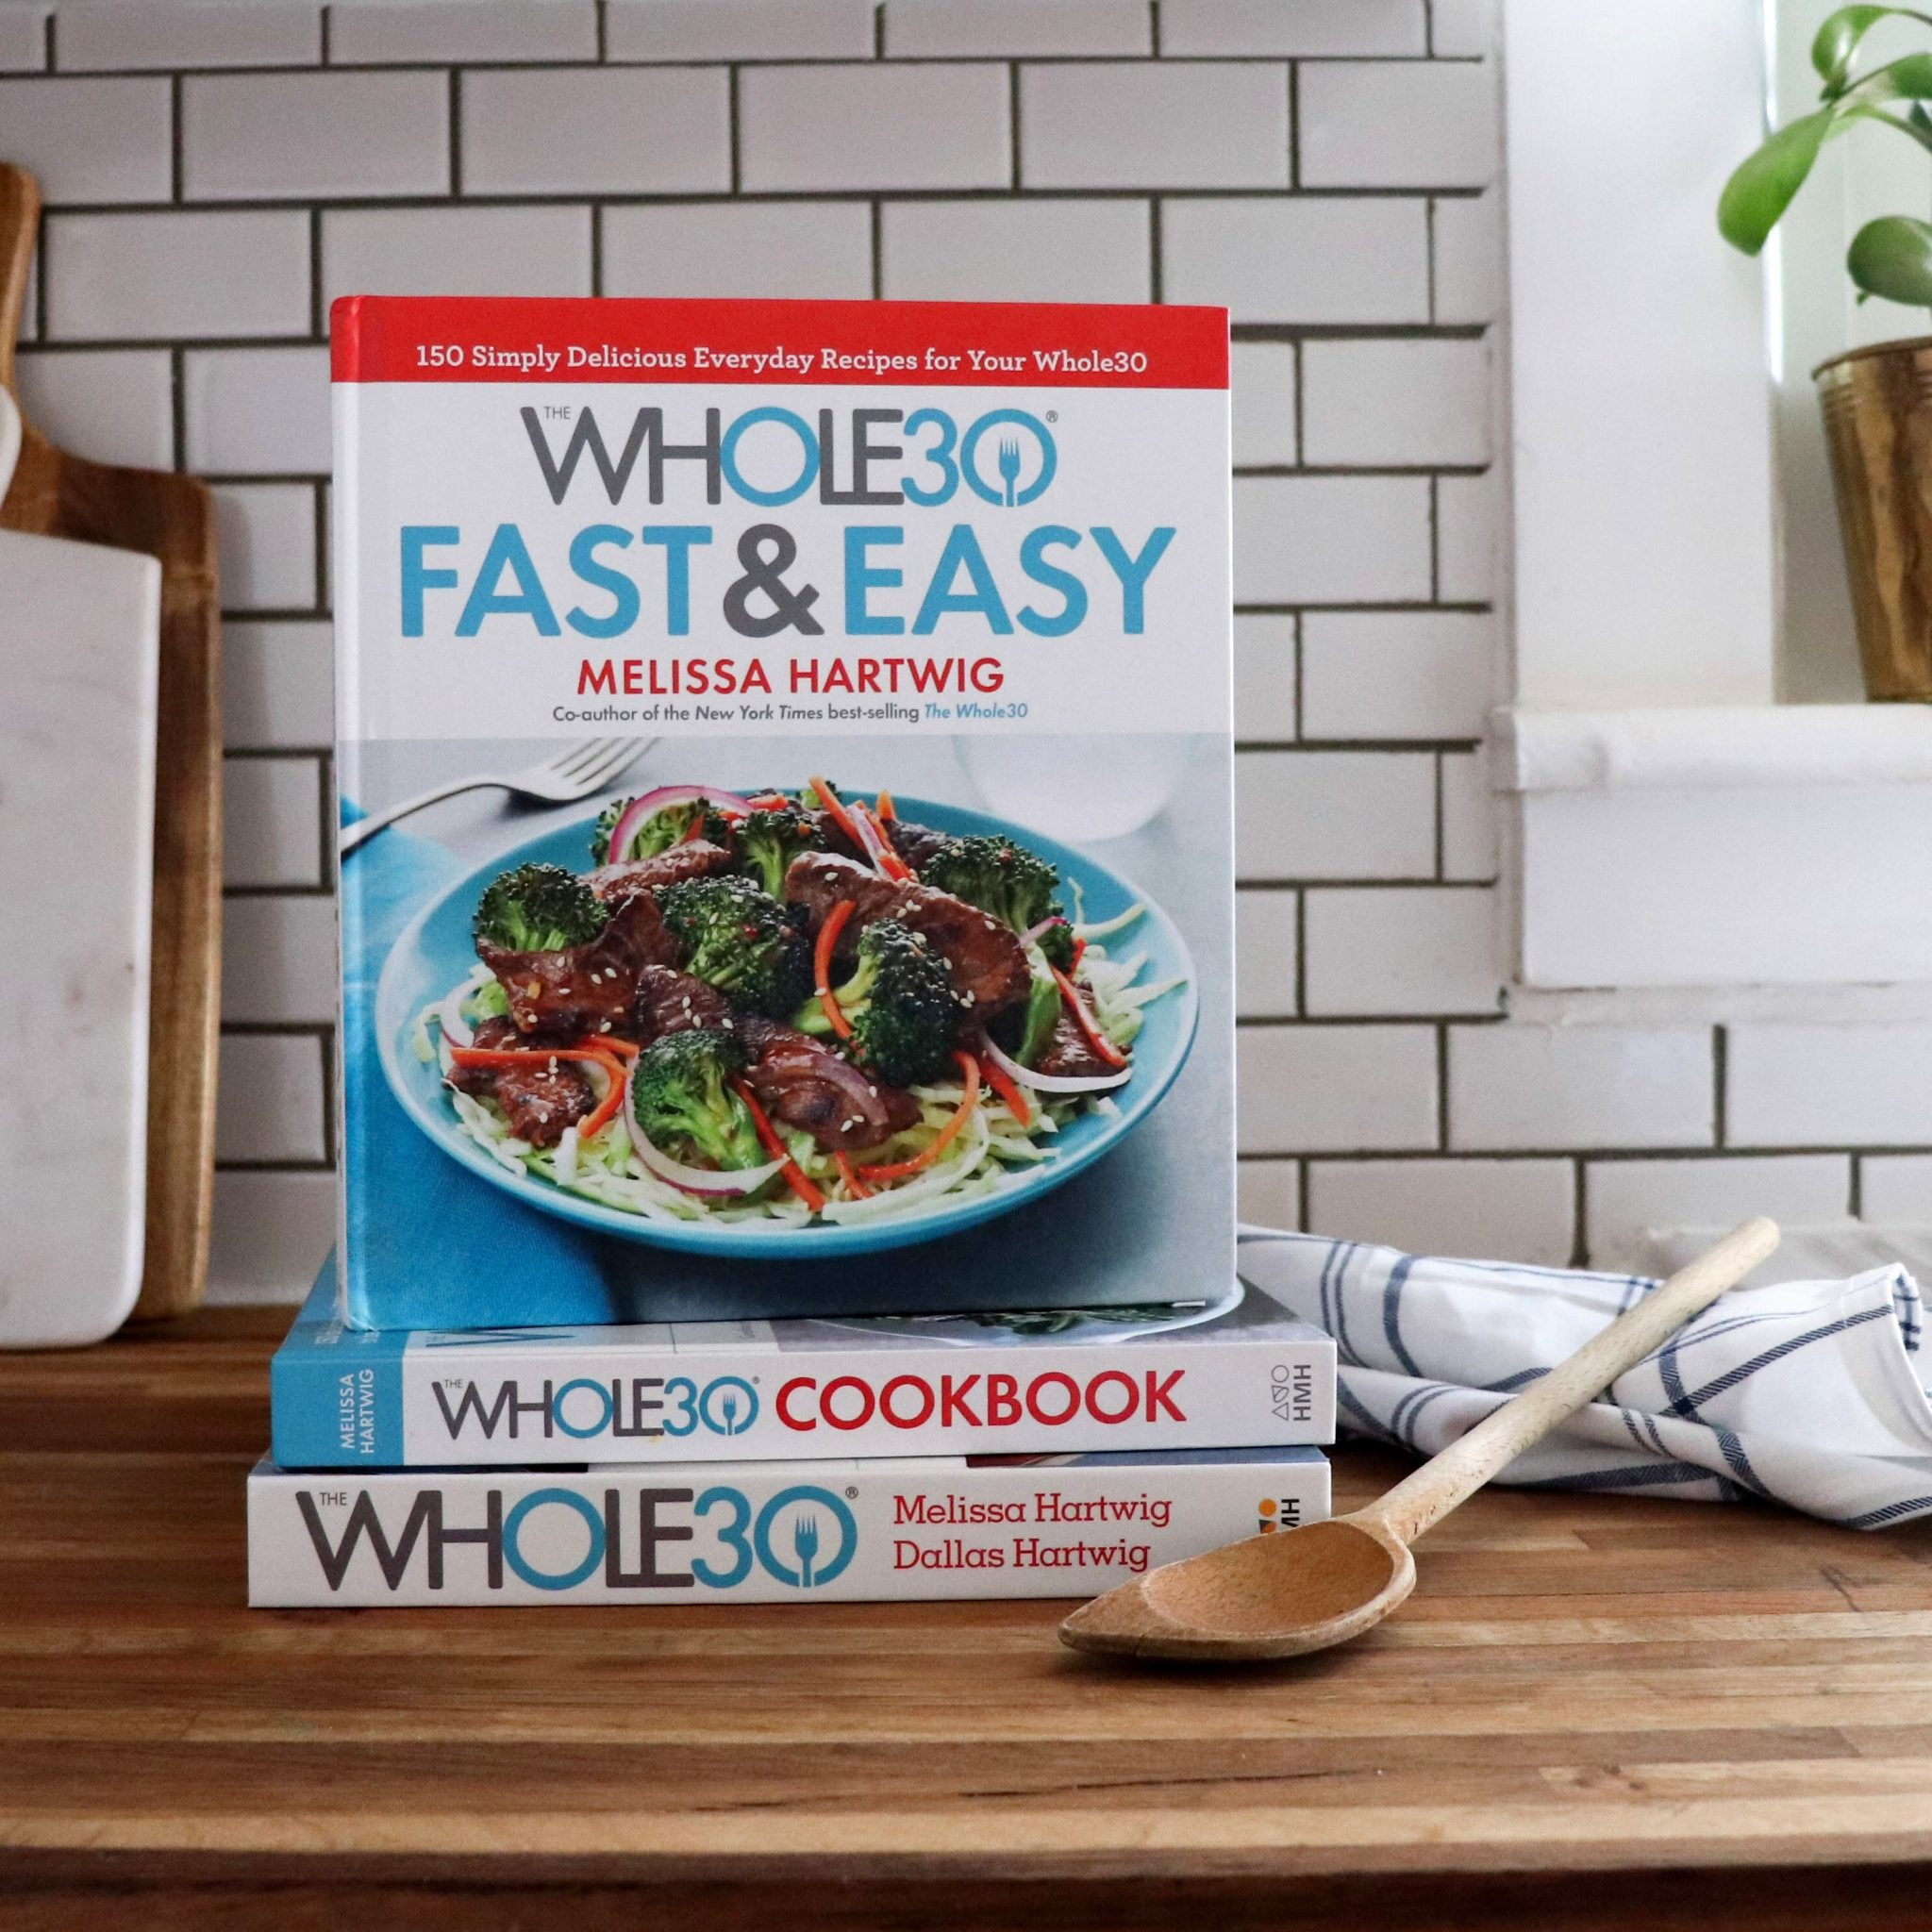 Whole30 Fast & Easy Cookbook